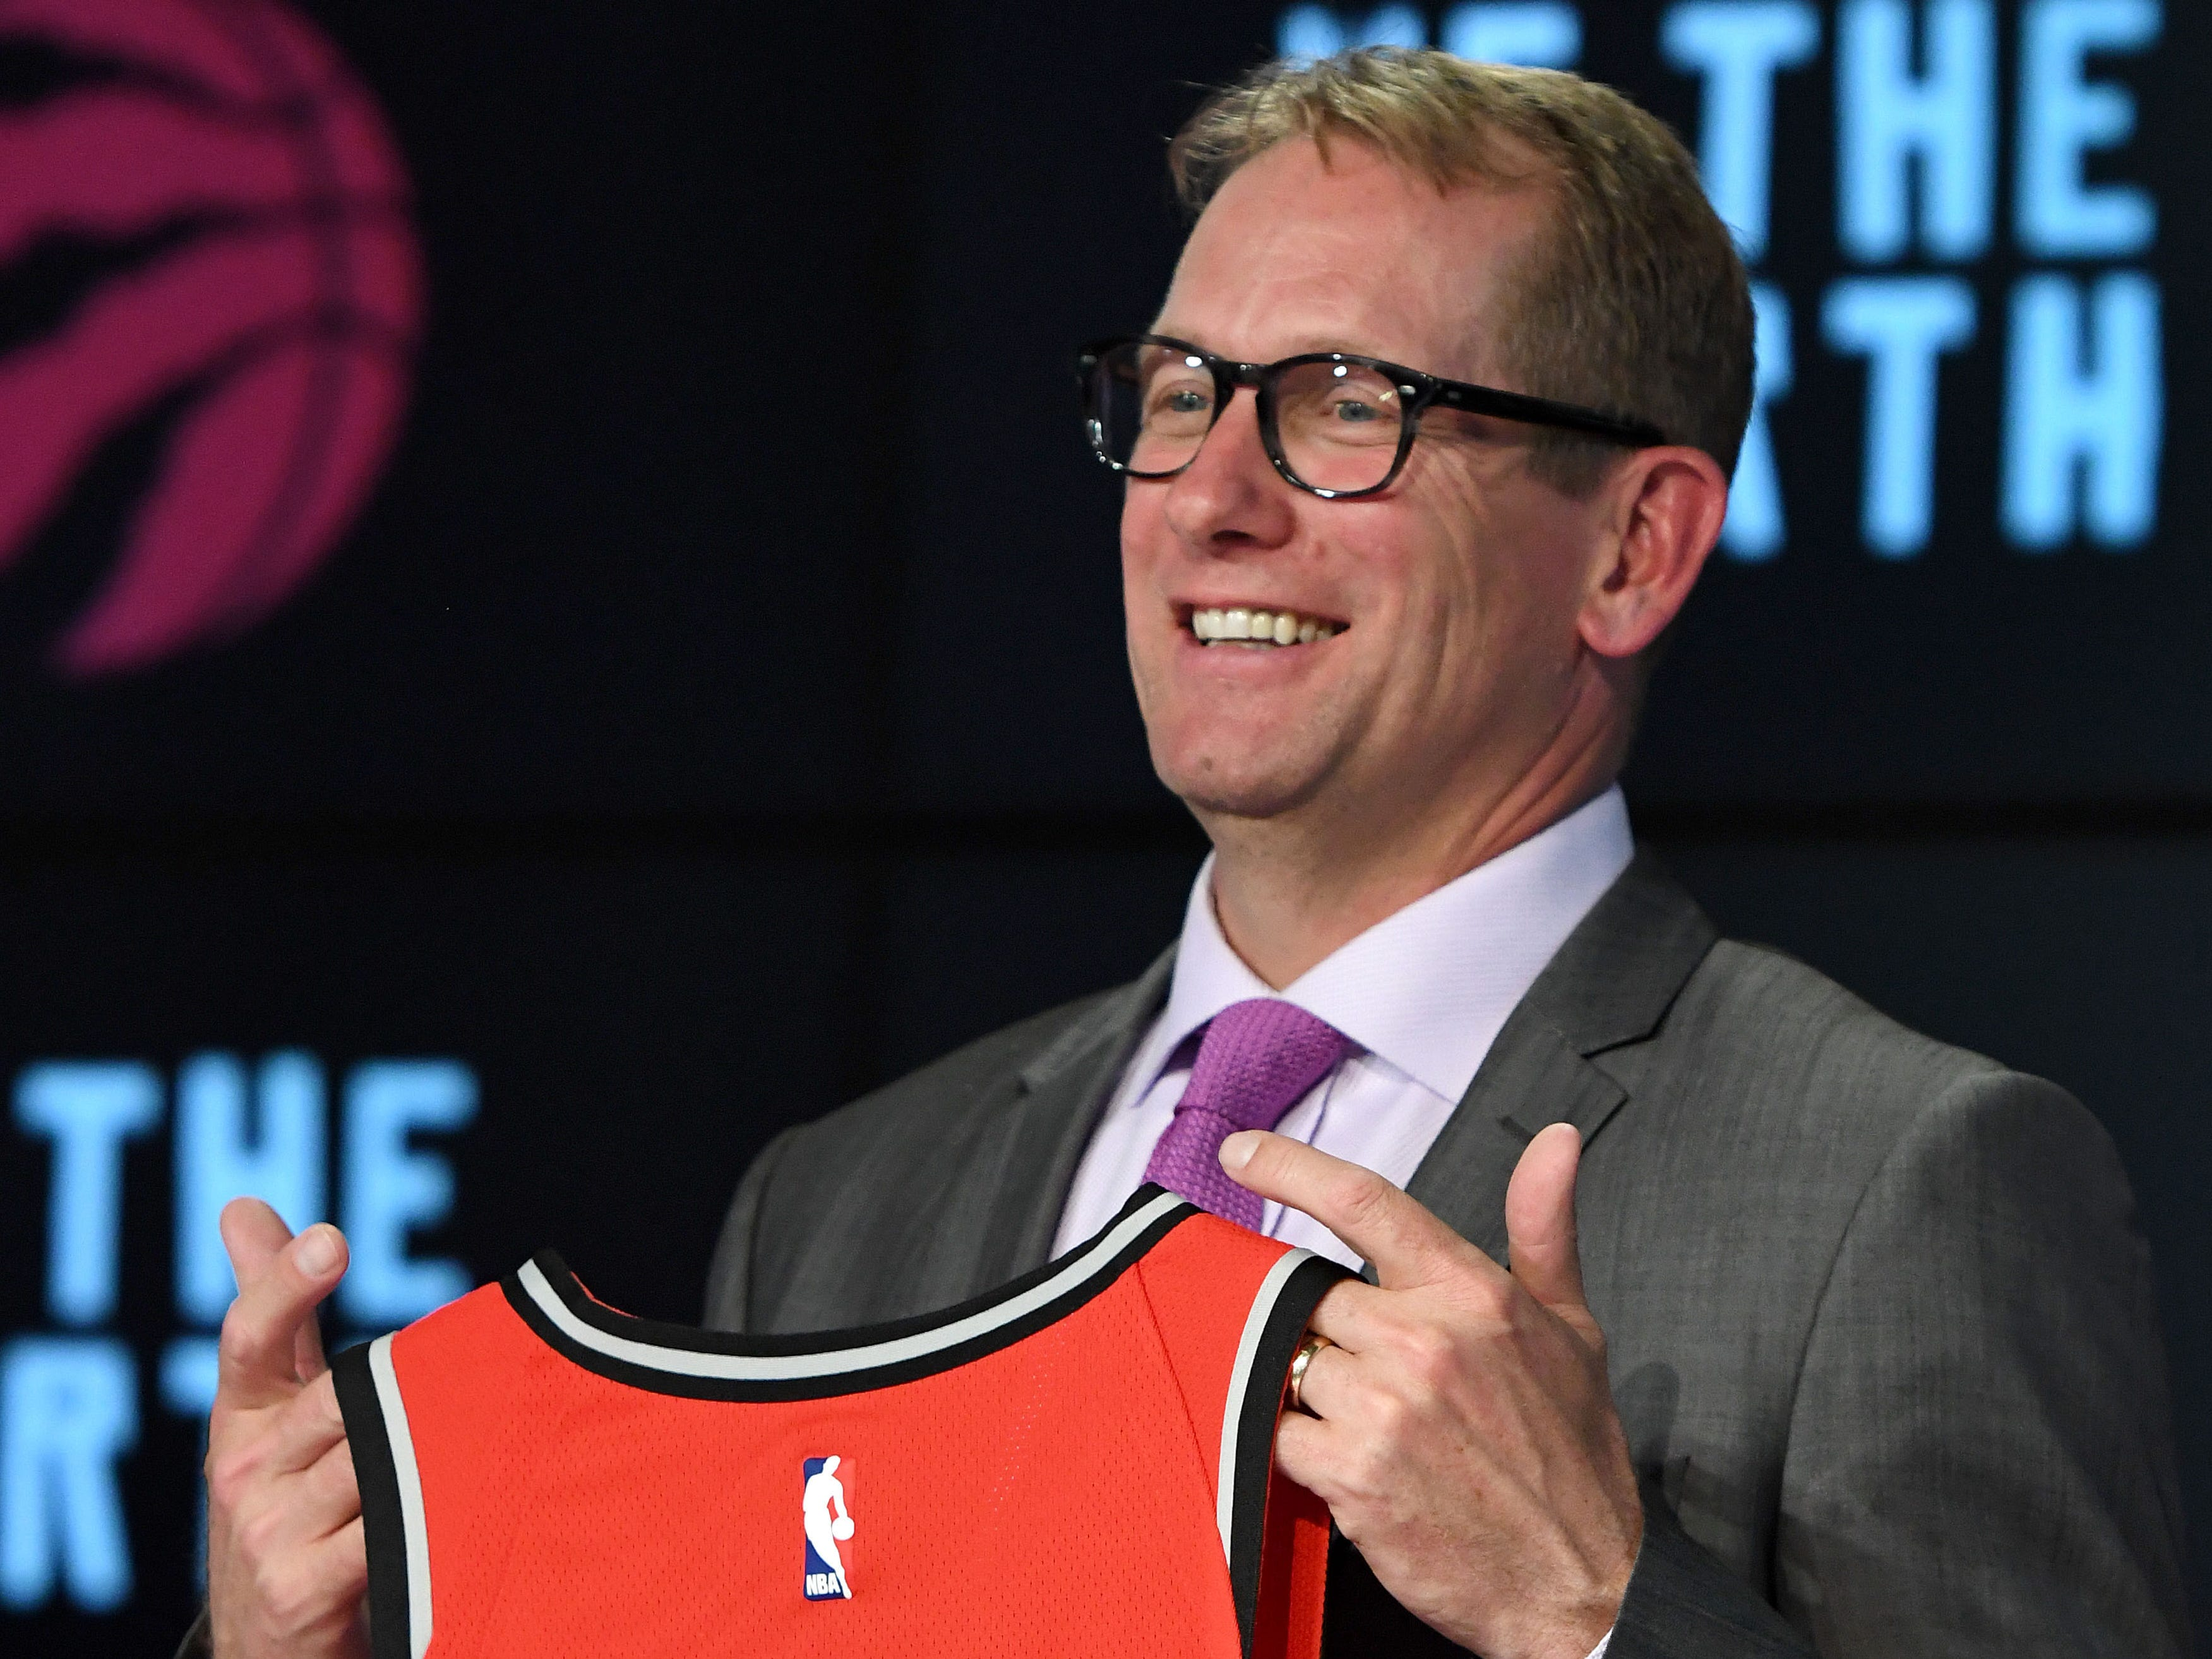 Toronto Raptors new head coach Nick Nurse poses for pictures after an introductory news conference at Air Canada Centre.